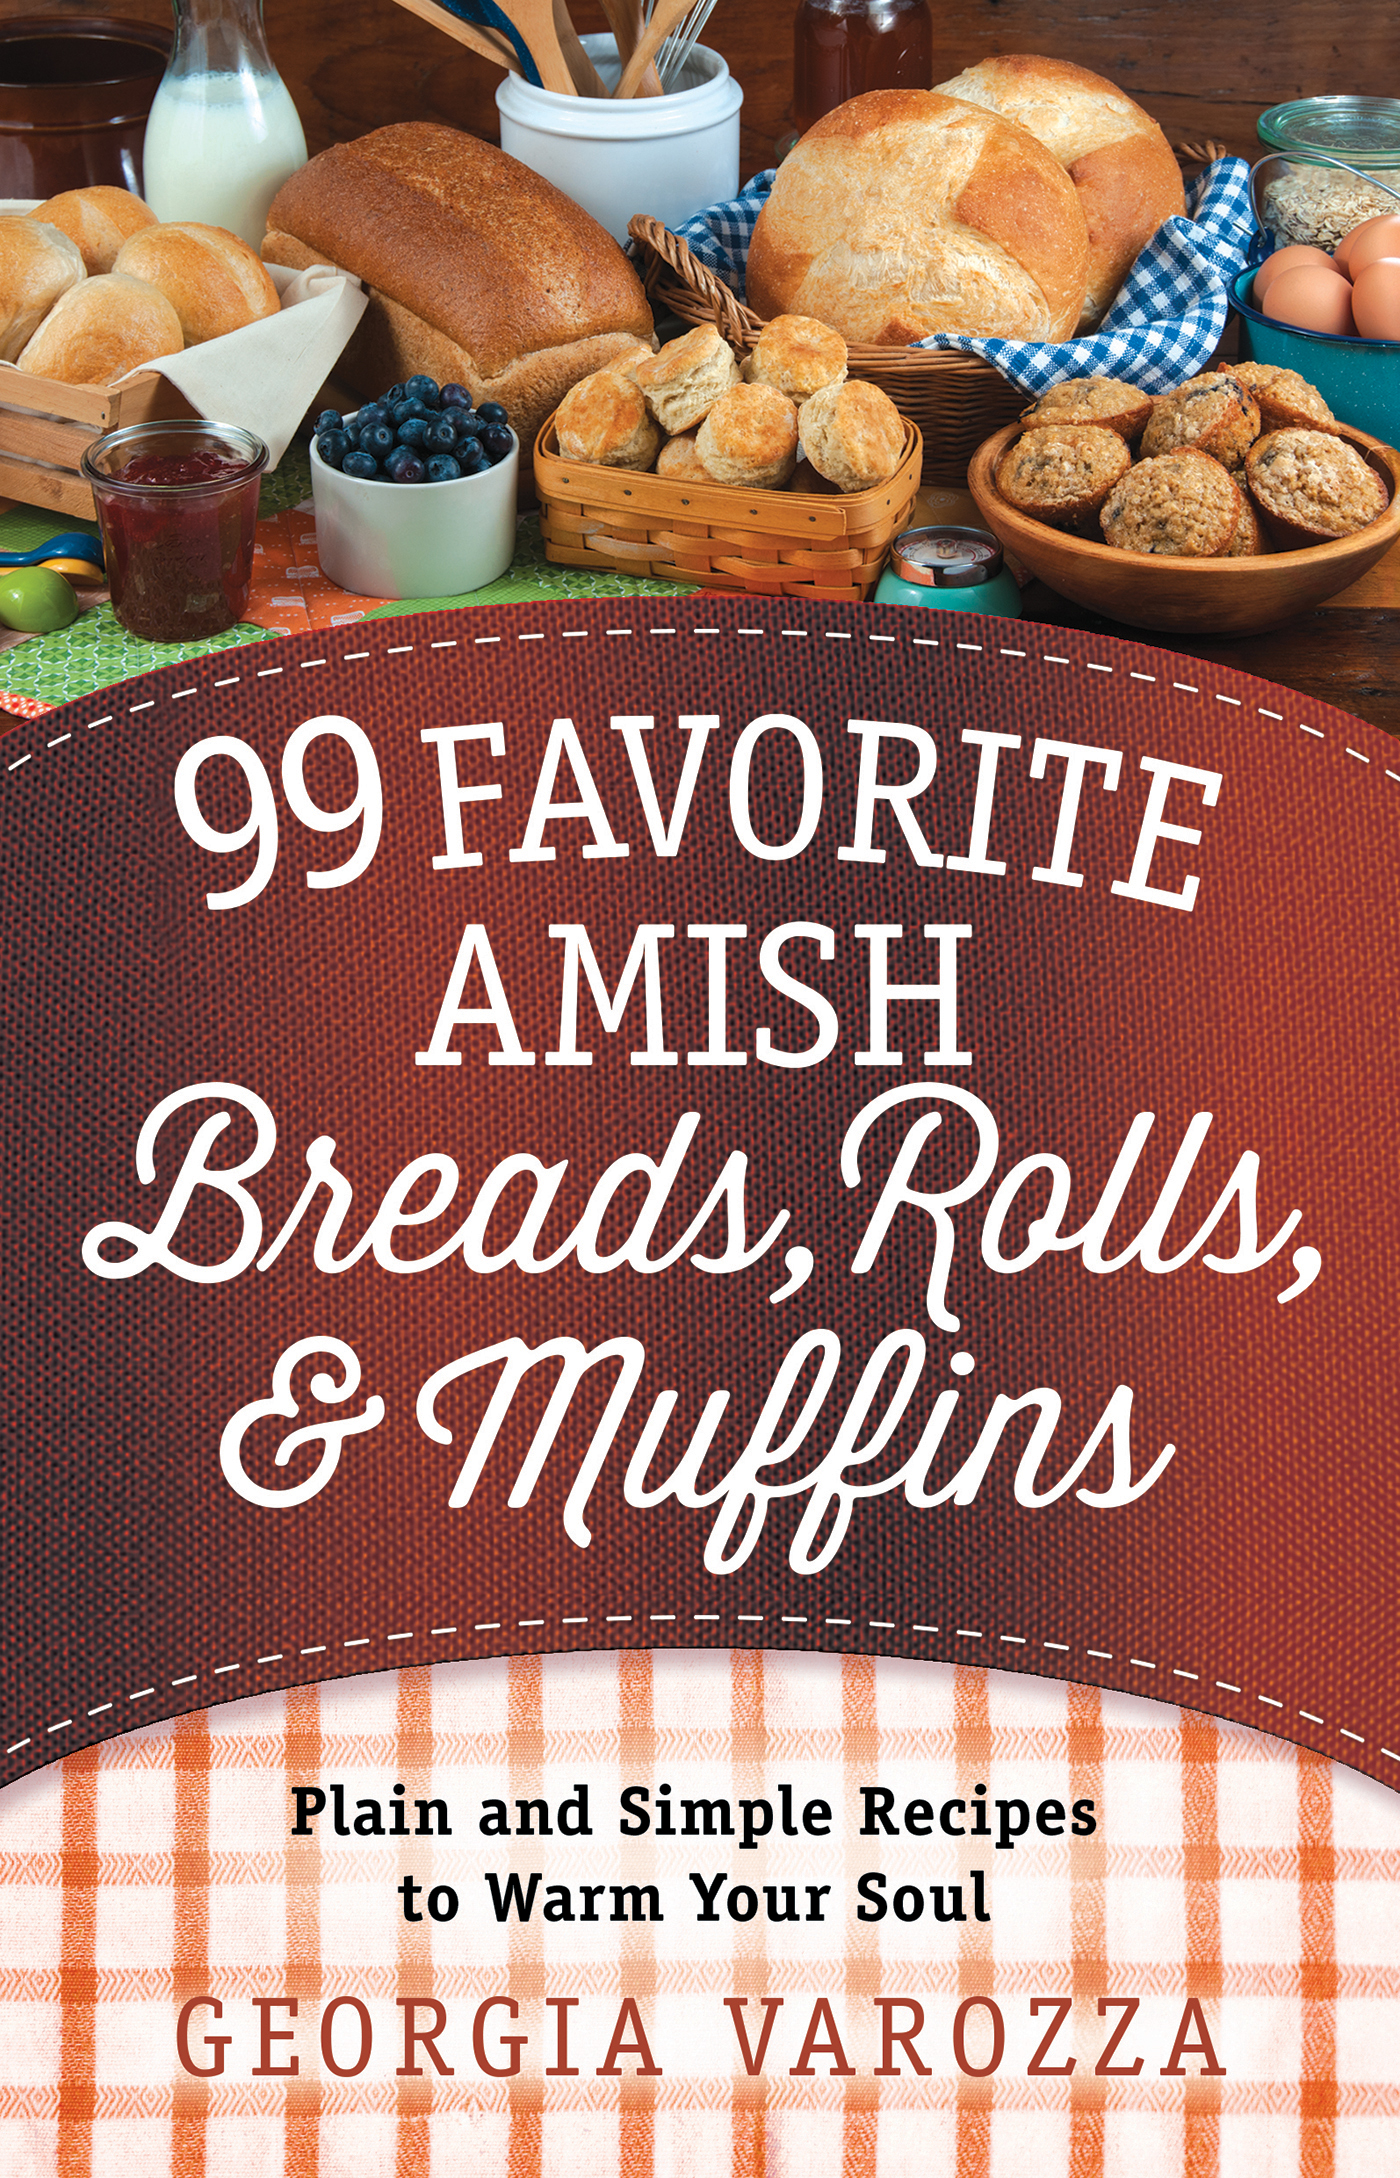 99 Favorite Amish Breads, Rolls, and Muffins Plain and Simple Recipes to Warm Your Soul